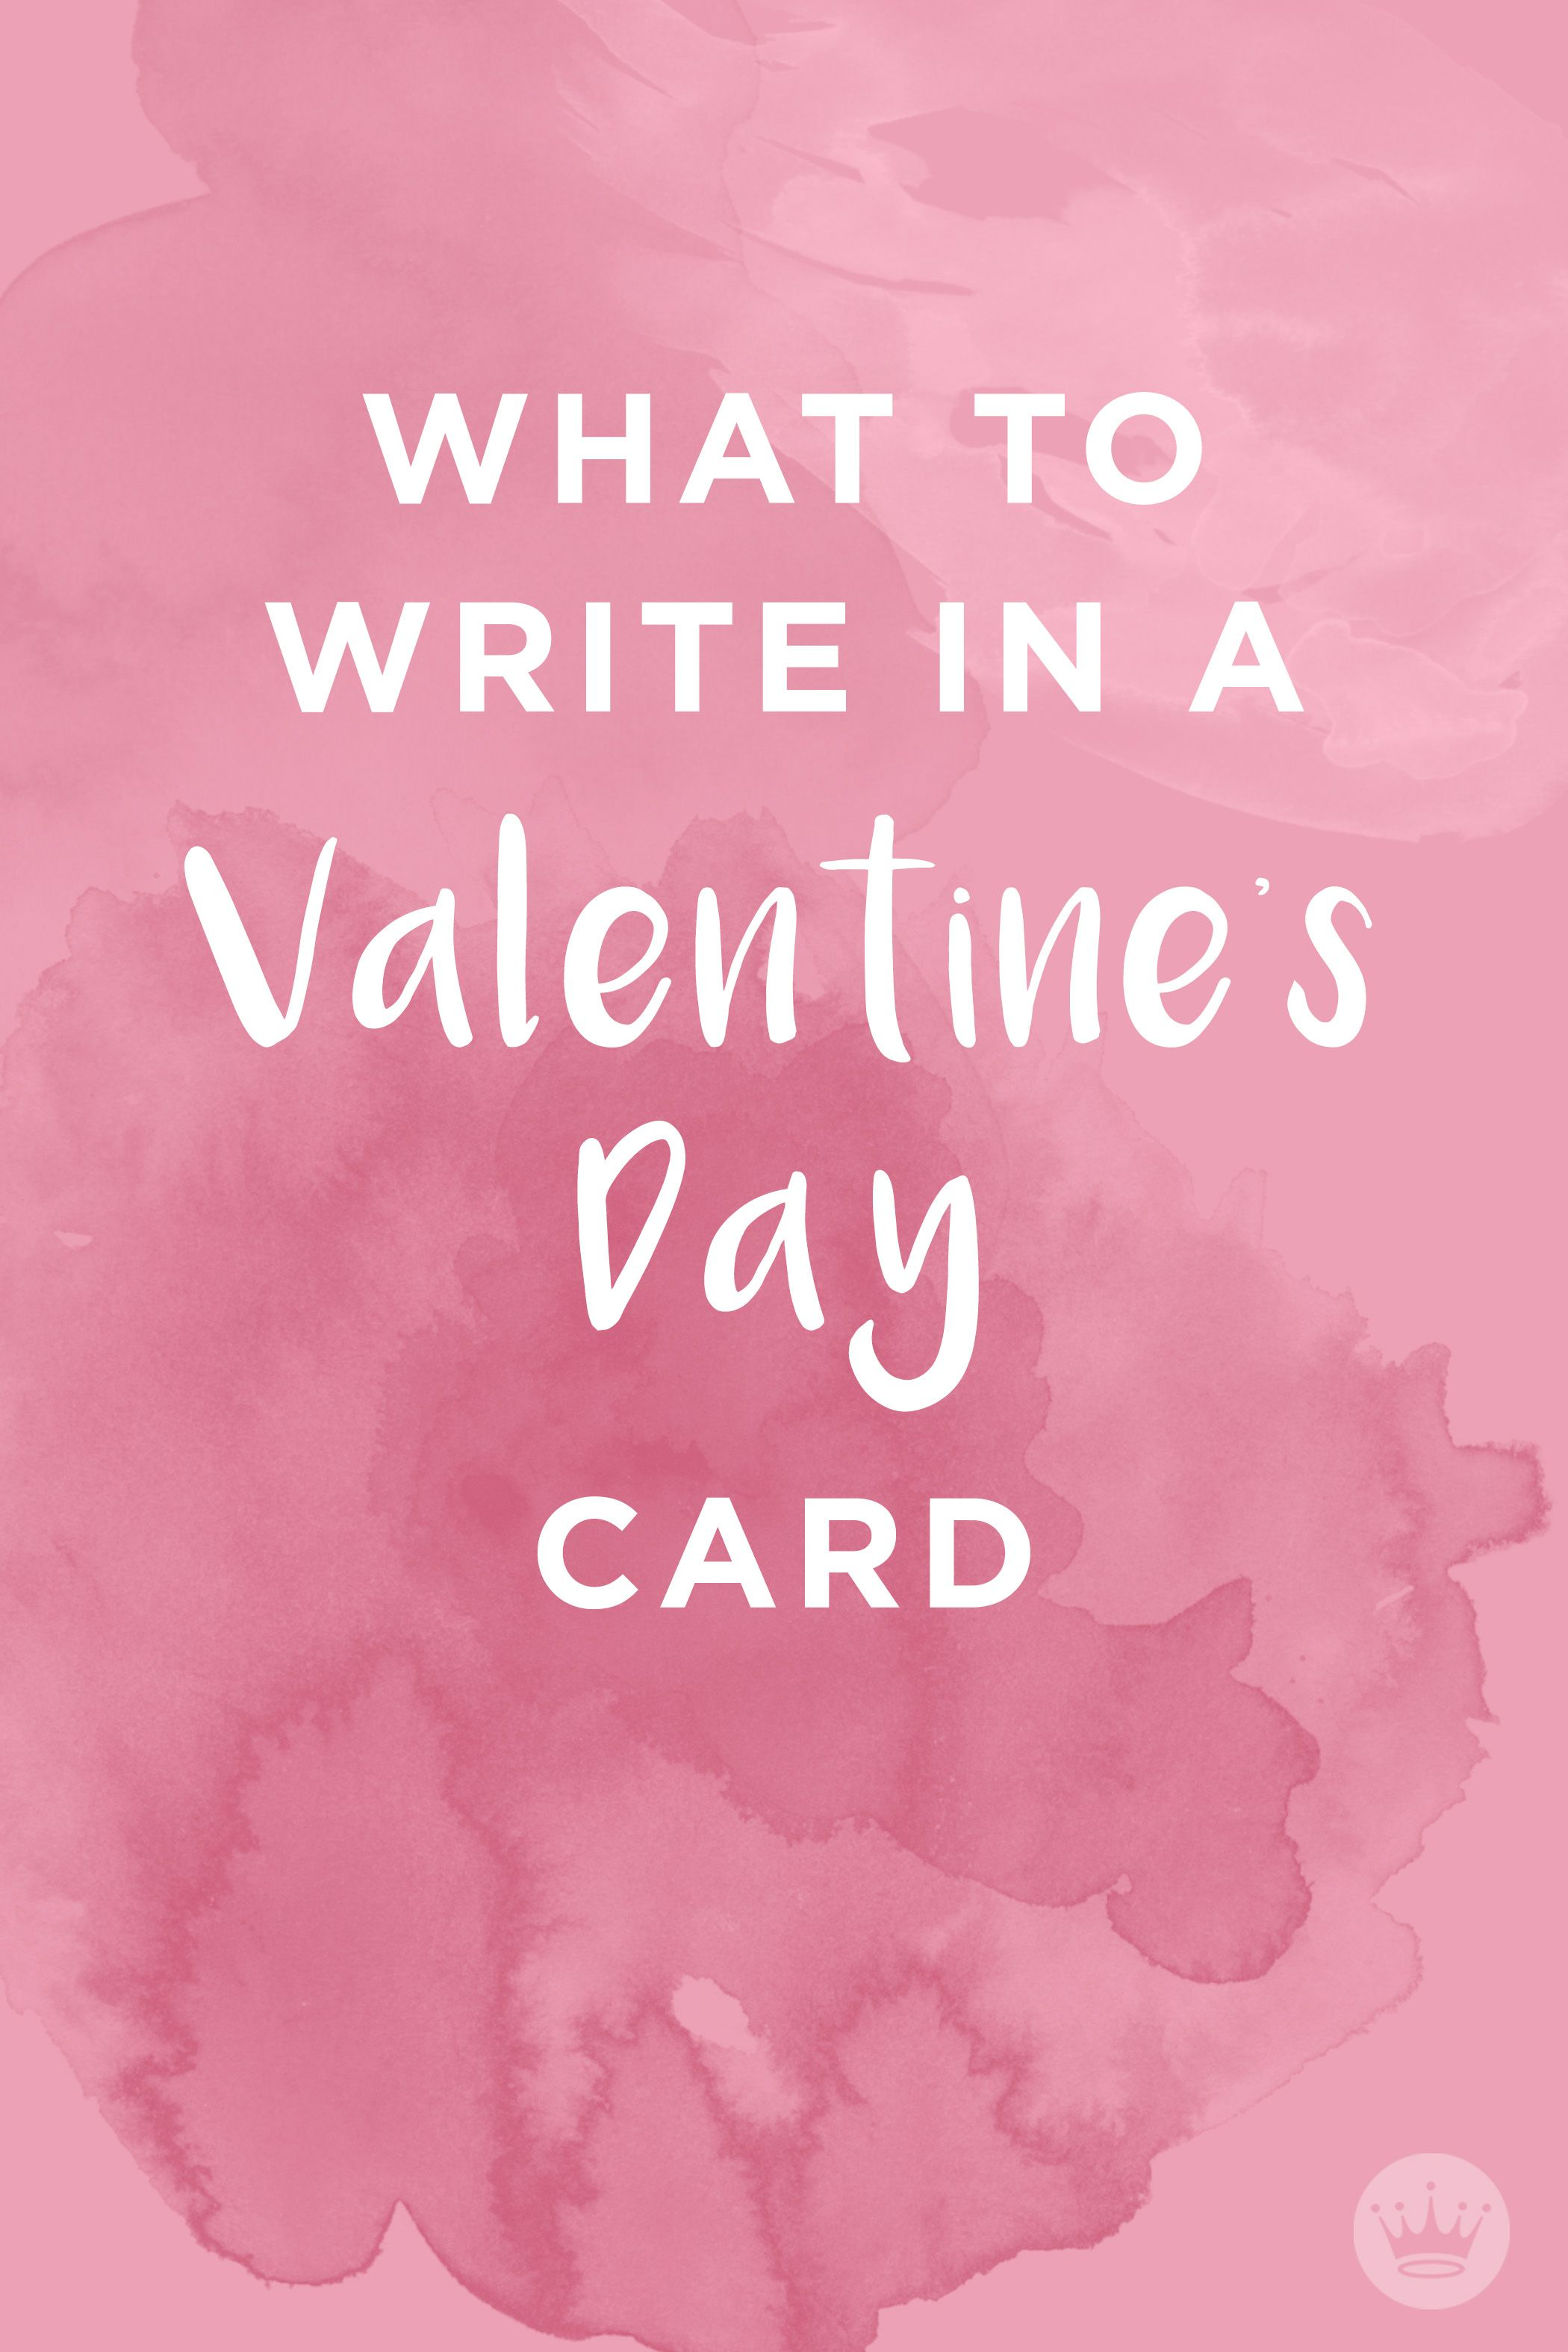 What To Write In A Valentines Day Card Whether Youre Signing A Valentine For Friends Family Or That Special Someone In Your Life Hallmark Offers Up